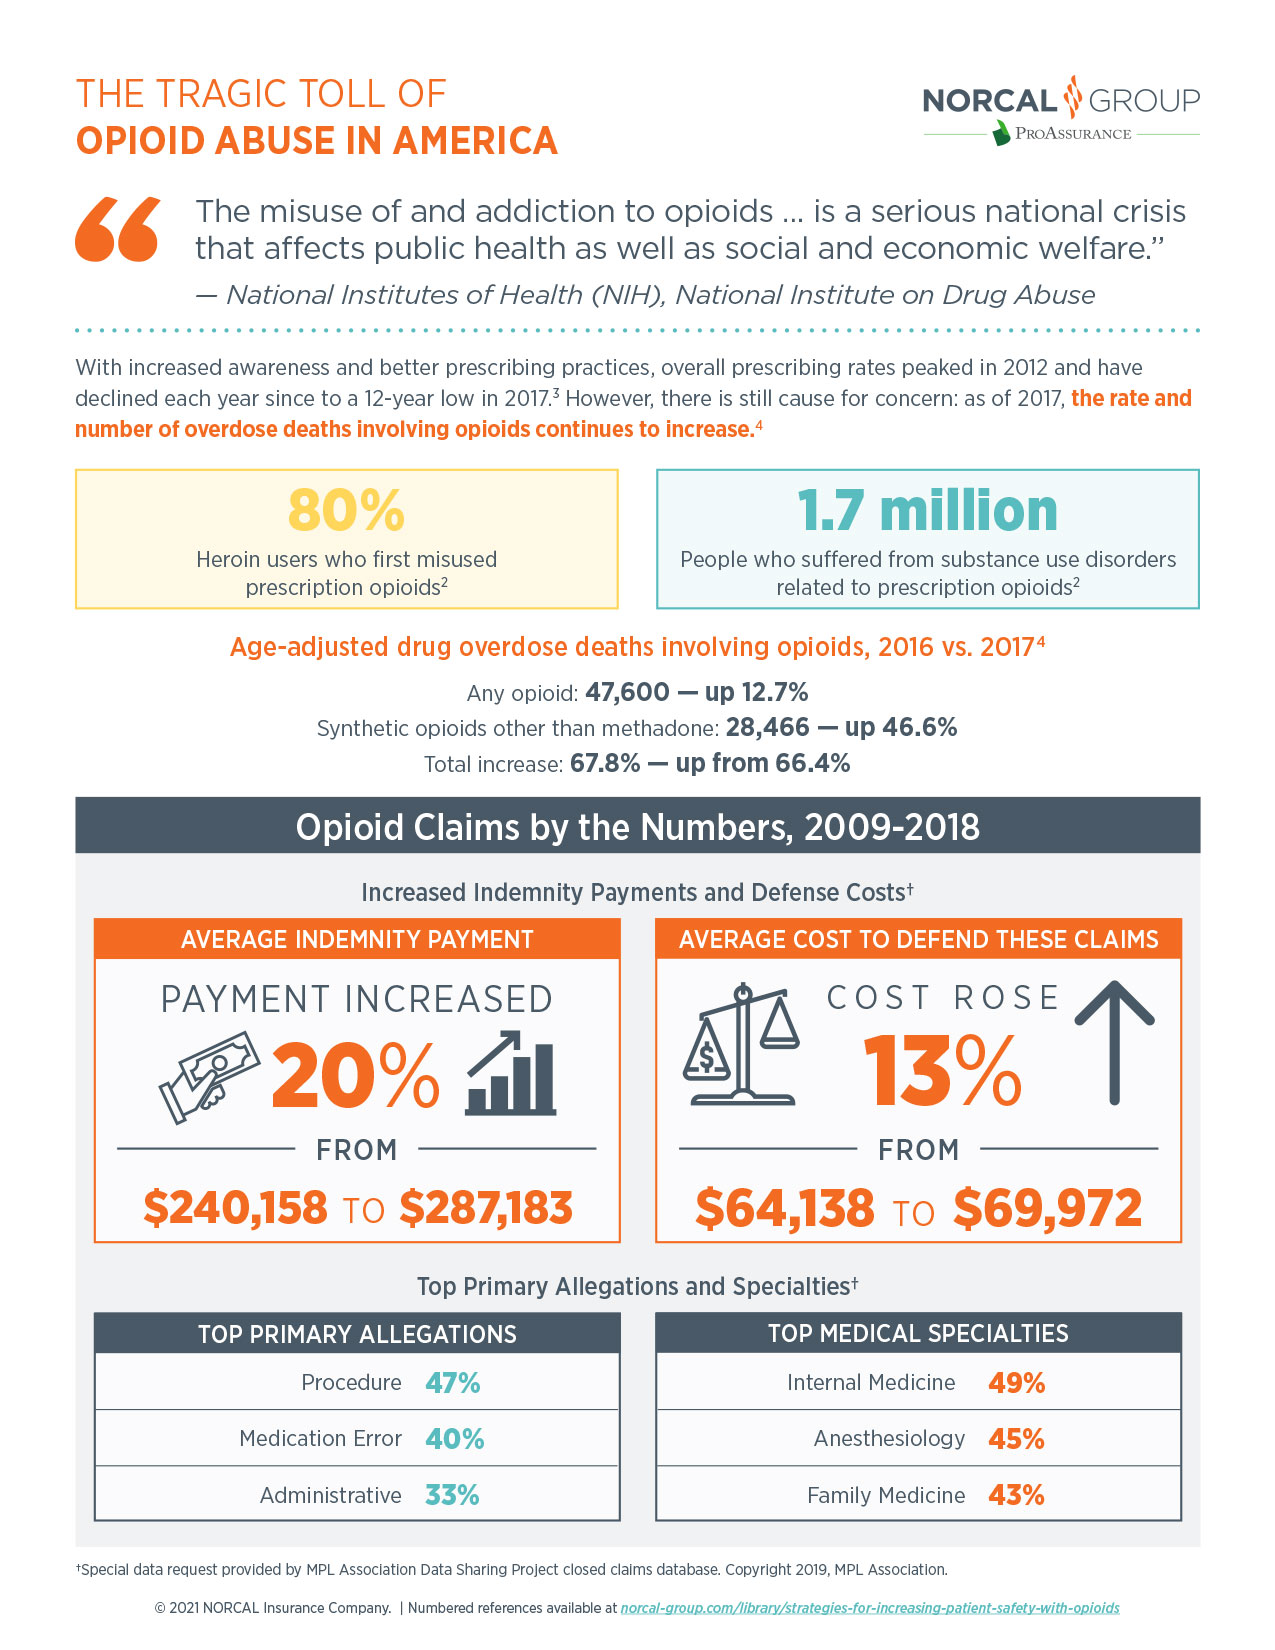 Infographic depicting the tragic toll of opioid abuse in America